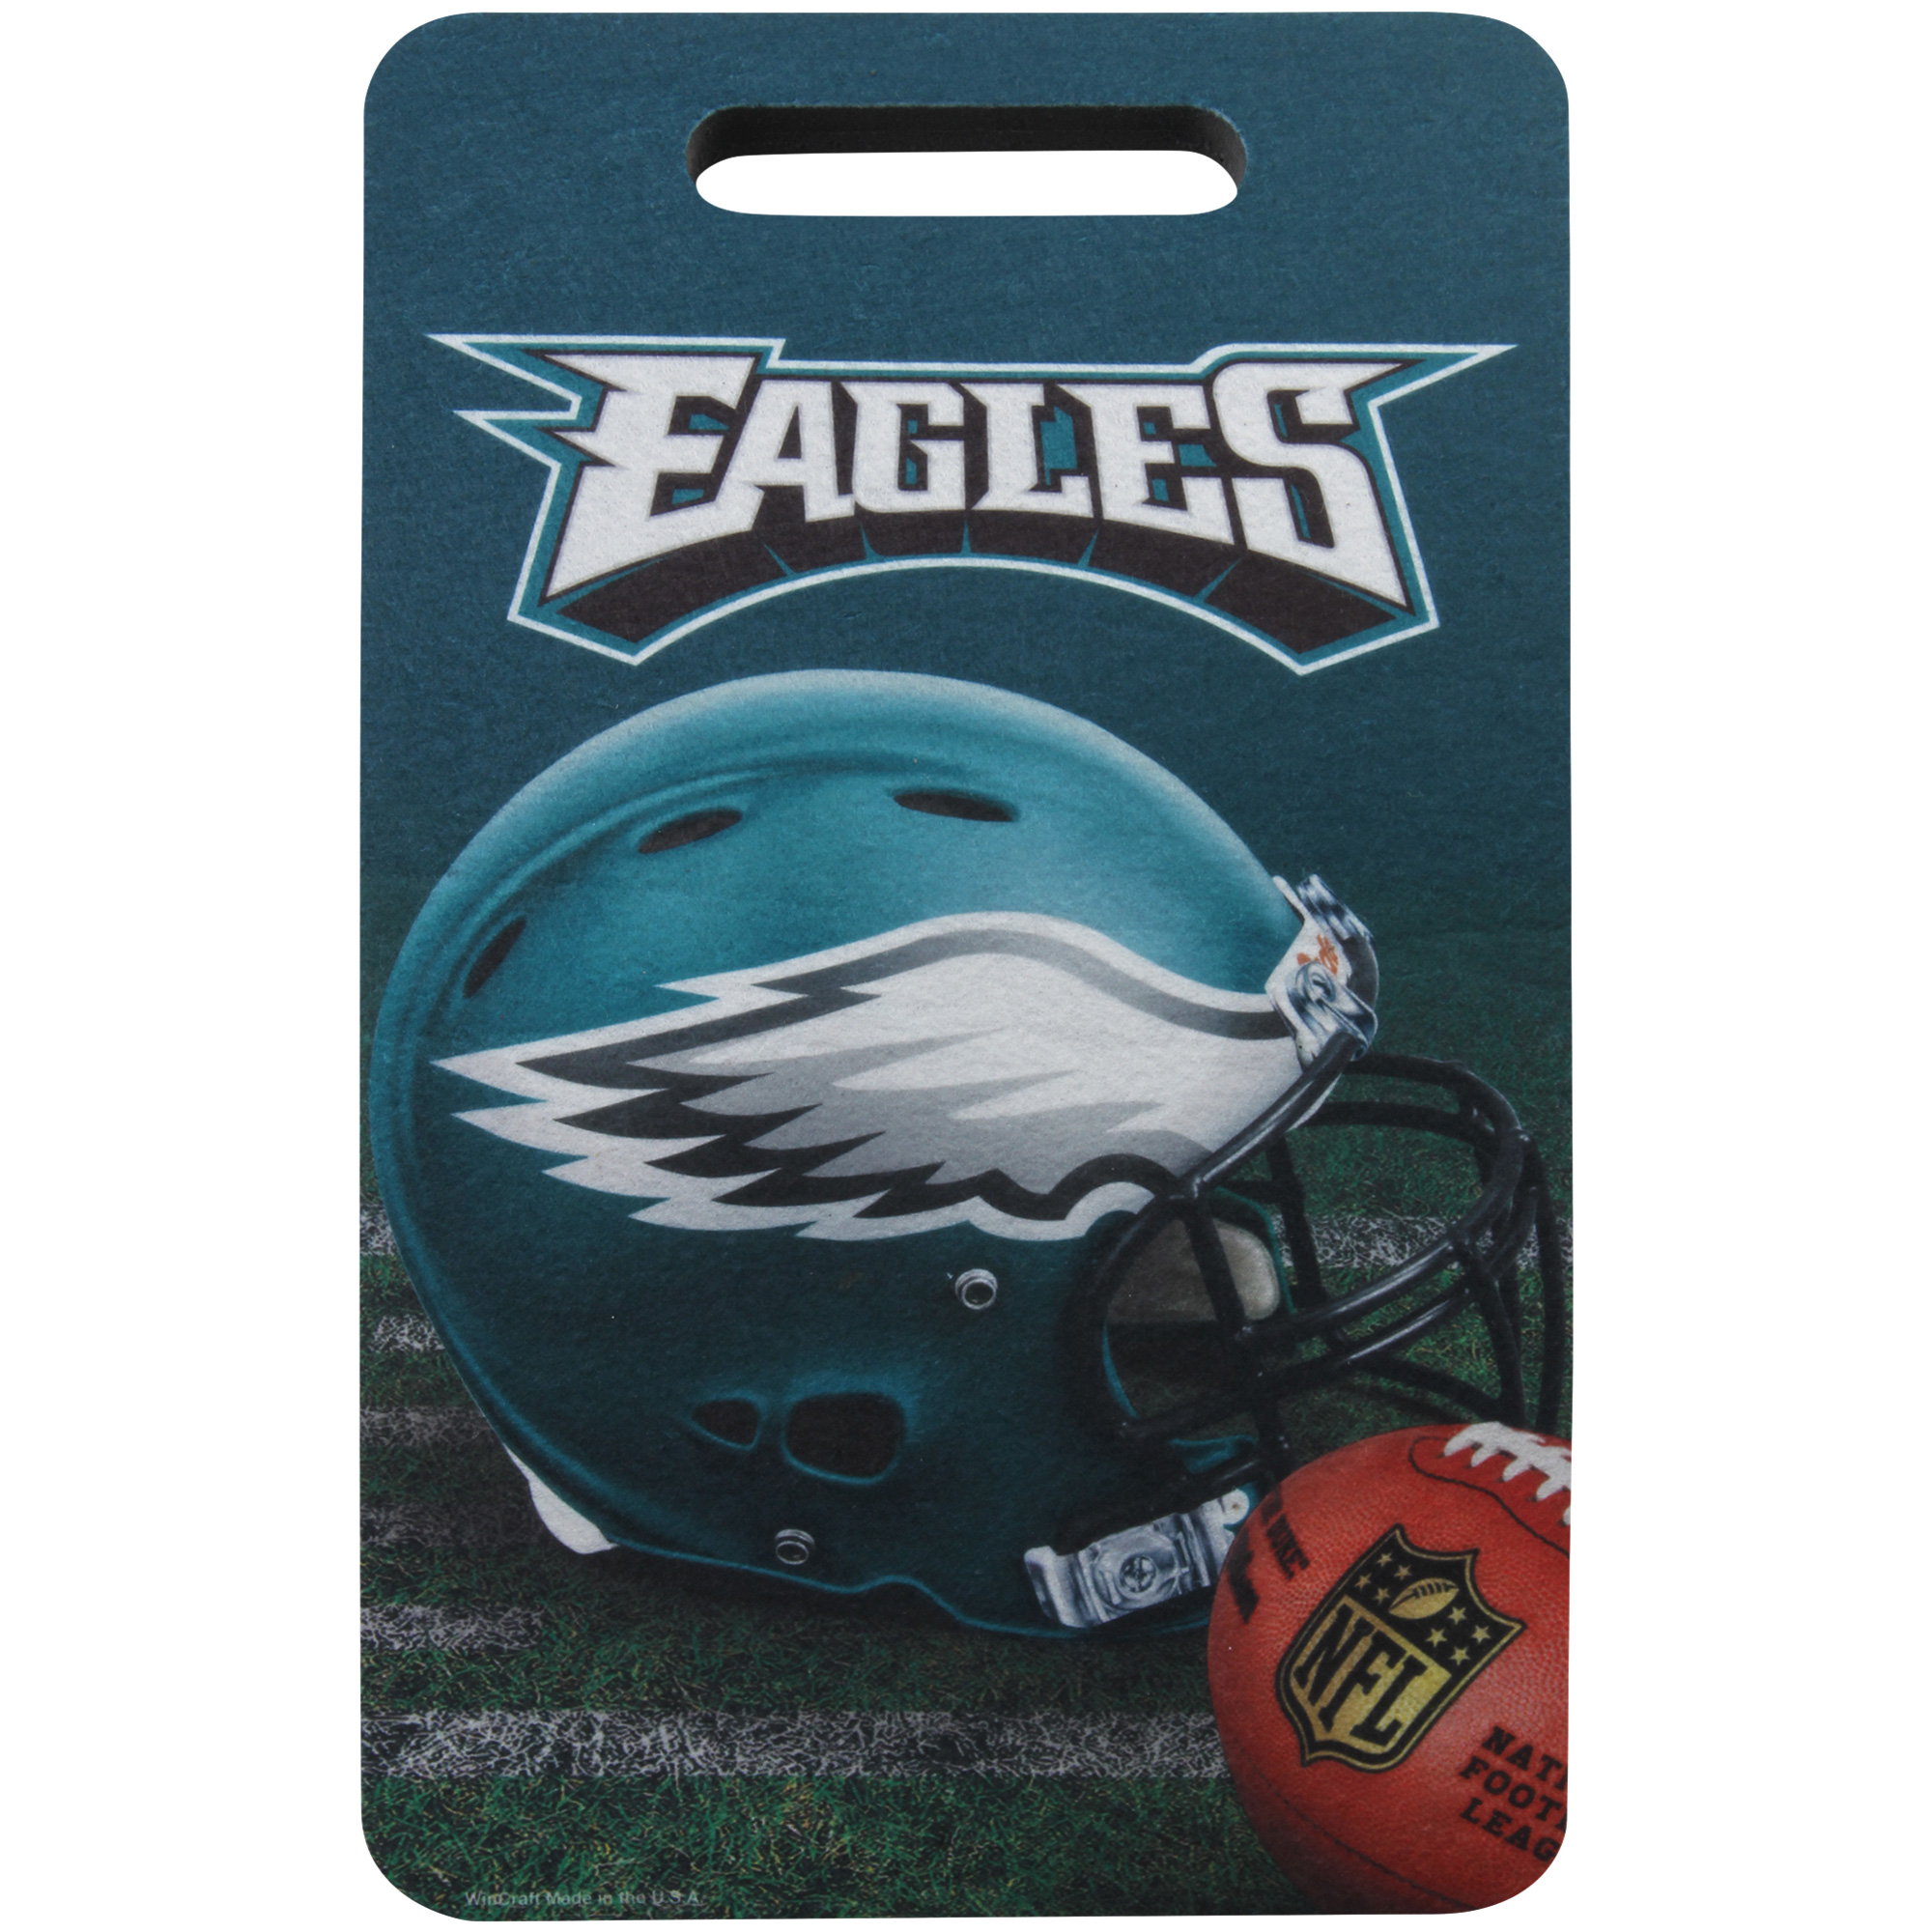 "Philadelphia Eagles WinCraft 10"" x 17"" Stadium Seat Cushion - No Size"